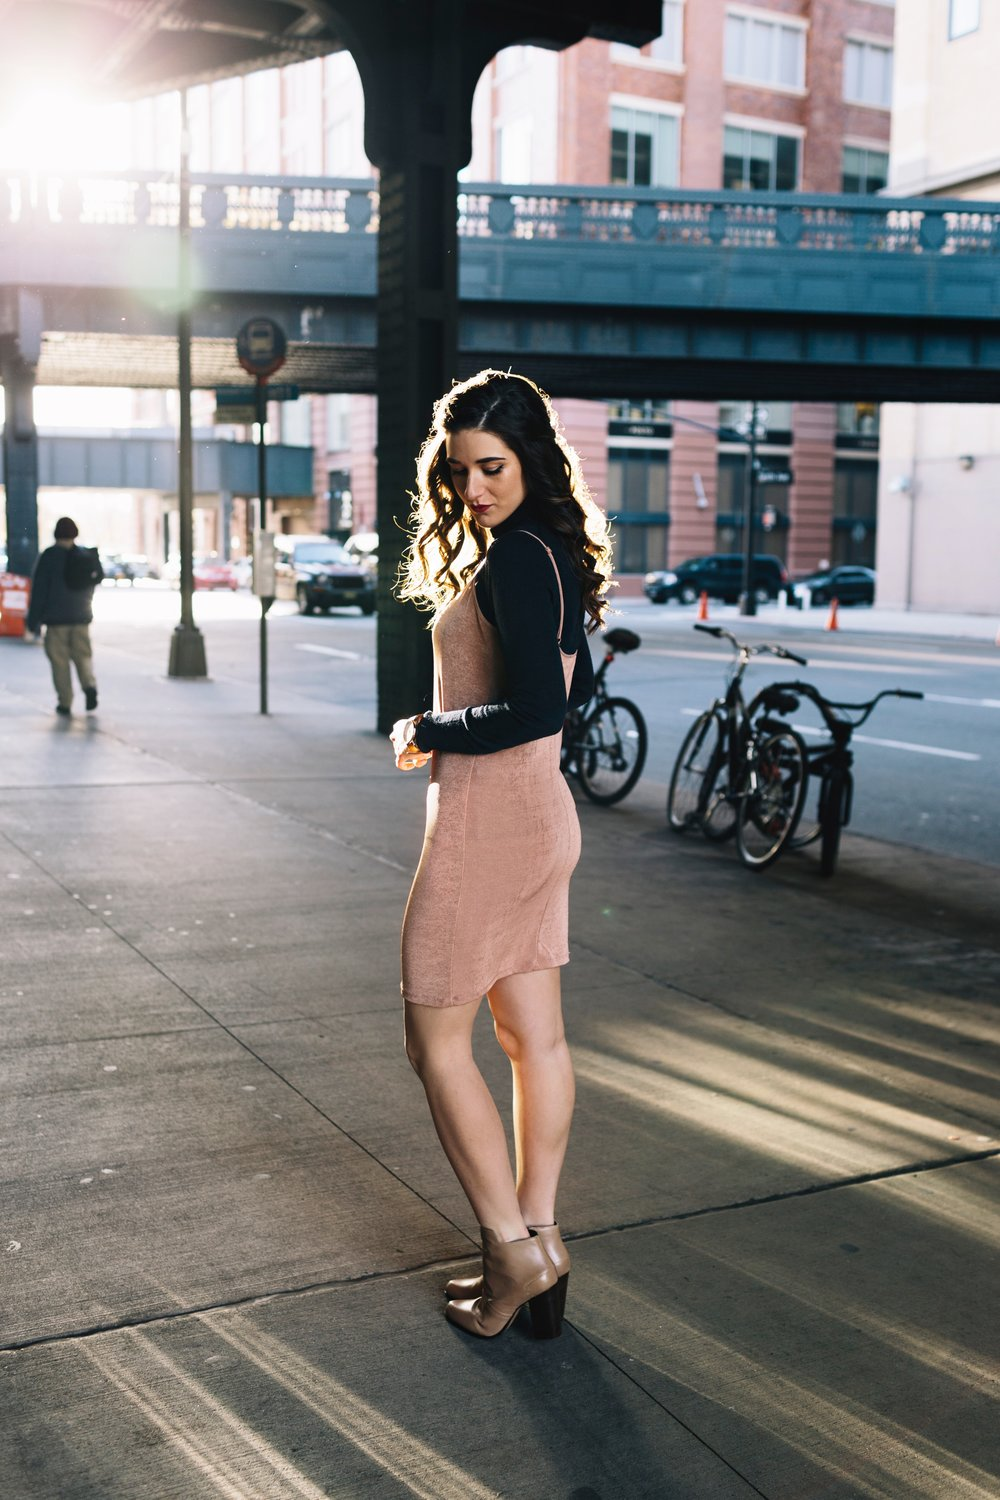 Navy Turtleneck + Pink Slip Dress Finding Your Niche Esther Santer Fashion Blog Louboutins & Love NYC Street Style Blogger Outfit OOTD Trendy Booties Shoes Hair Girl Women Winter Look Shopping Zara M4D3 Banana Republic Photoshoot New York City Shirt.JPG